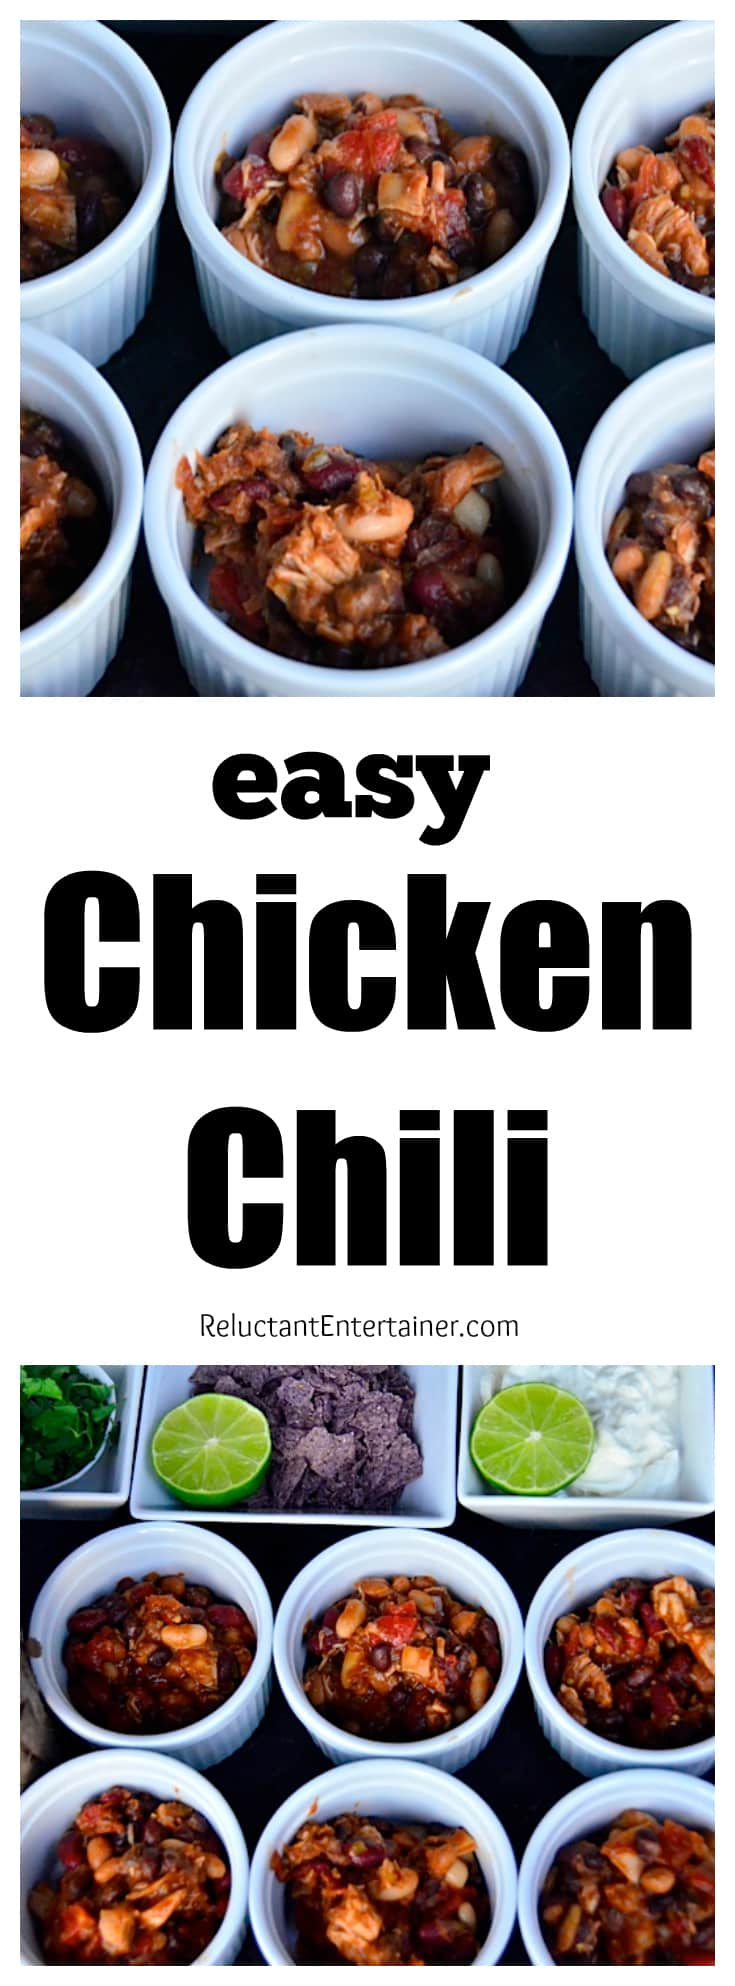 Easy Chicken Chili Recipe at ReluctantEntertainer.com